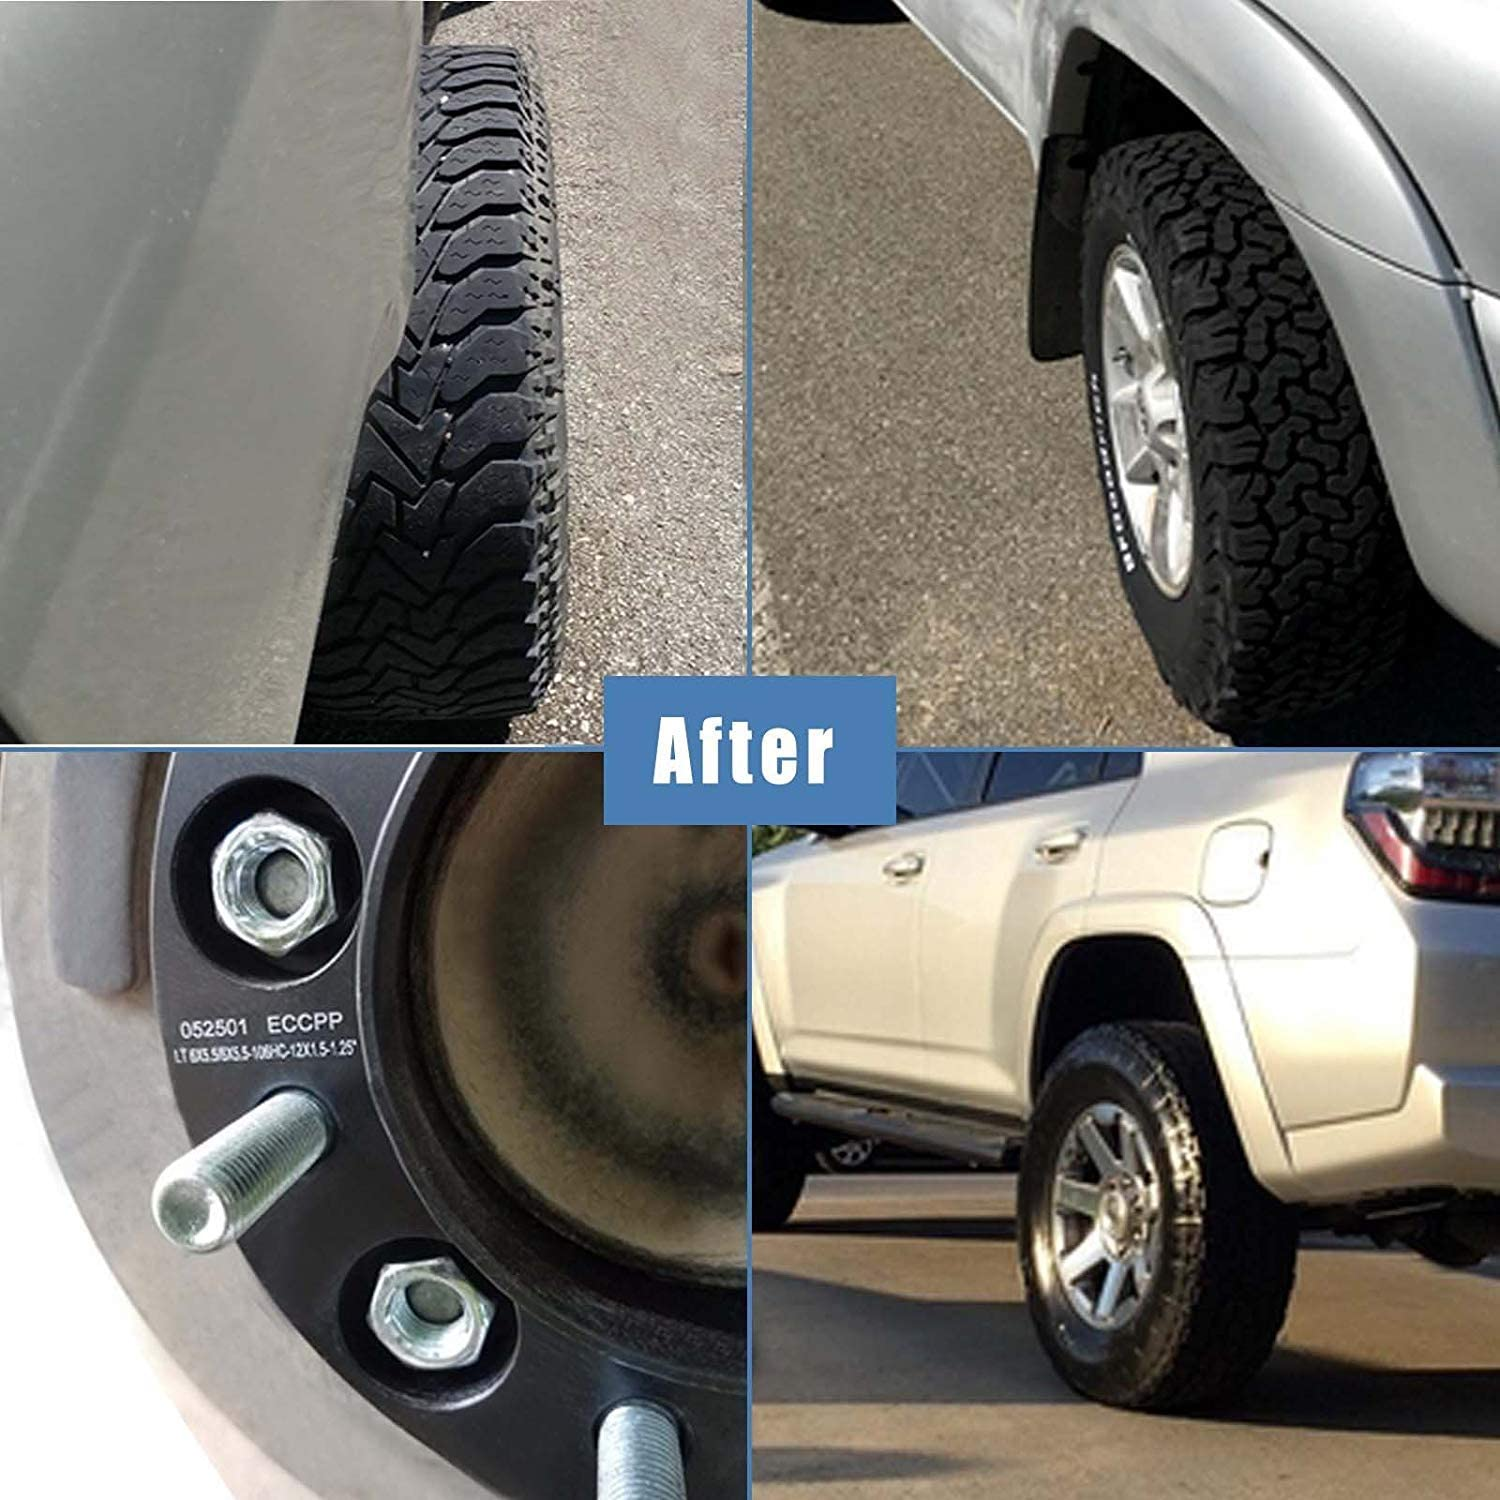 ECCPP 4x 6x5.5 Hubcentric Wheel Spacers 6 lug 1.5 6x139.7mm to 6x139.7mm 12x1.5 Studs fits for 2001-2006 Toyota Tundra Toyota Tacoma Toyota Sequoia Toyota 4-Runner 4X